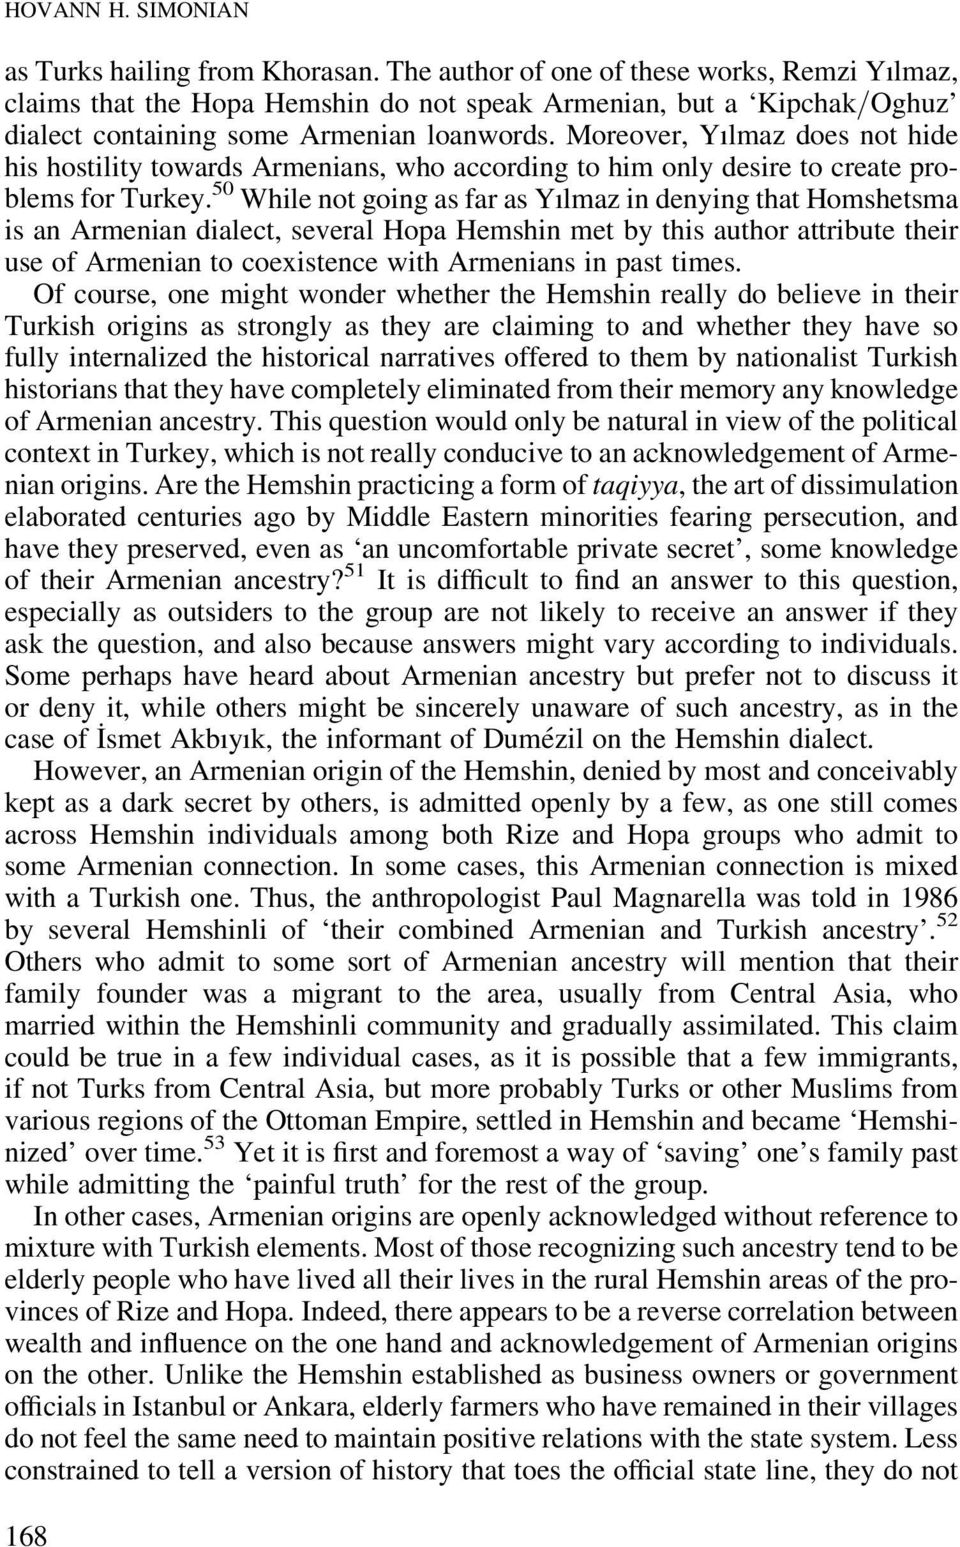 Moreover, Yılmaz does not hide his hostility towards Armenians, who according to him only desire to create problems for Turkey.